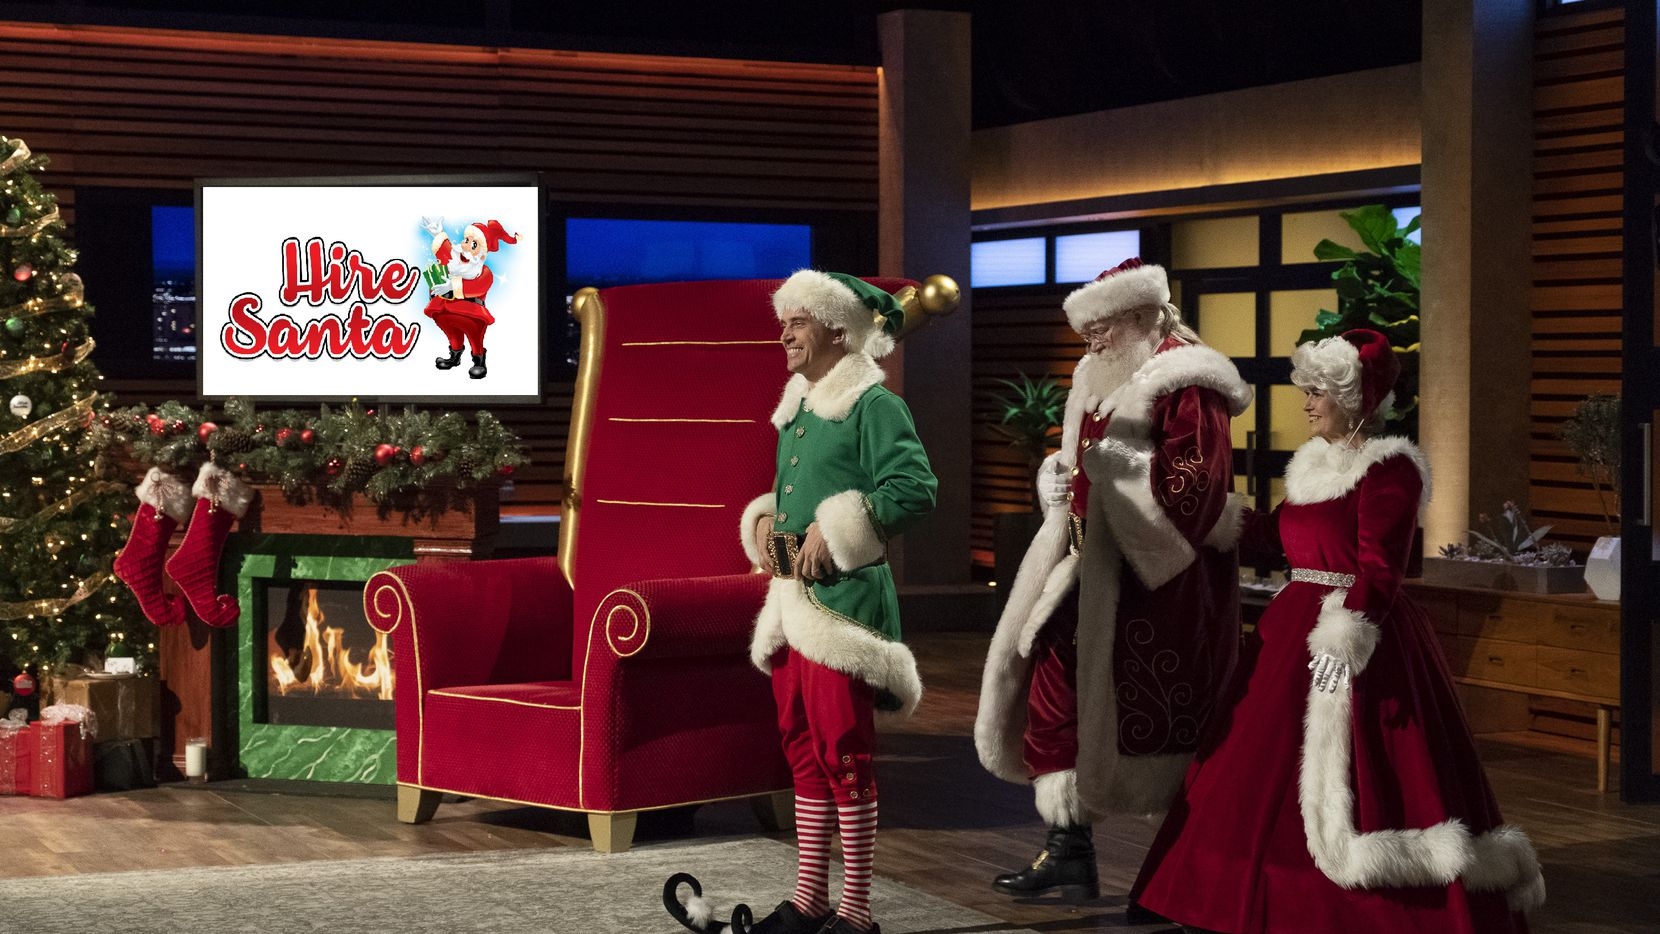 There was more holiday cheer than ever on Shark Tank when Mitch Allen, an entrepreneurial elf from Southlake, presented his large database of Santa entertainers to help people hire Santa Claus during the holidays.